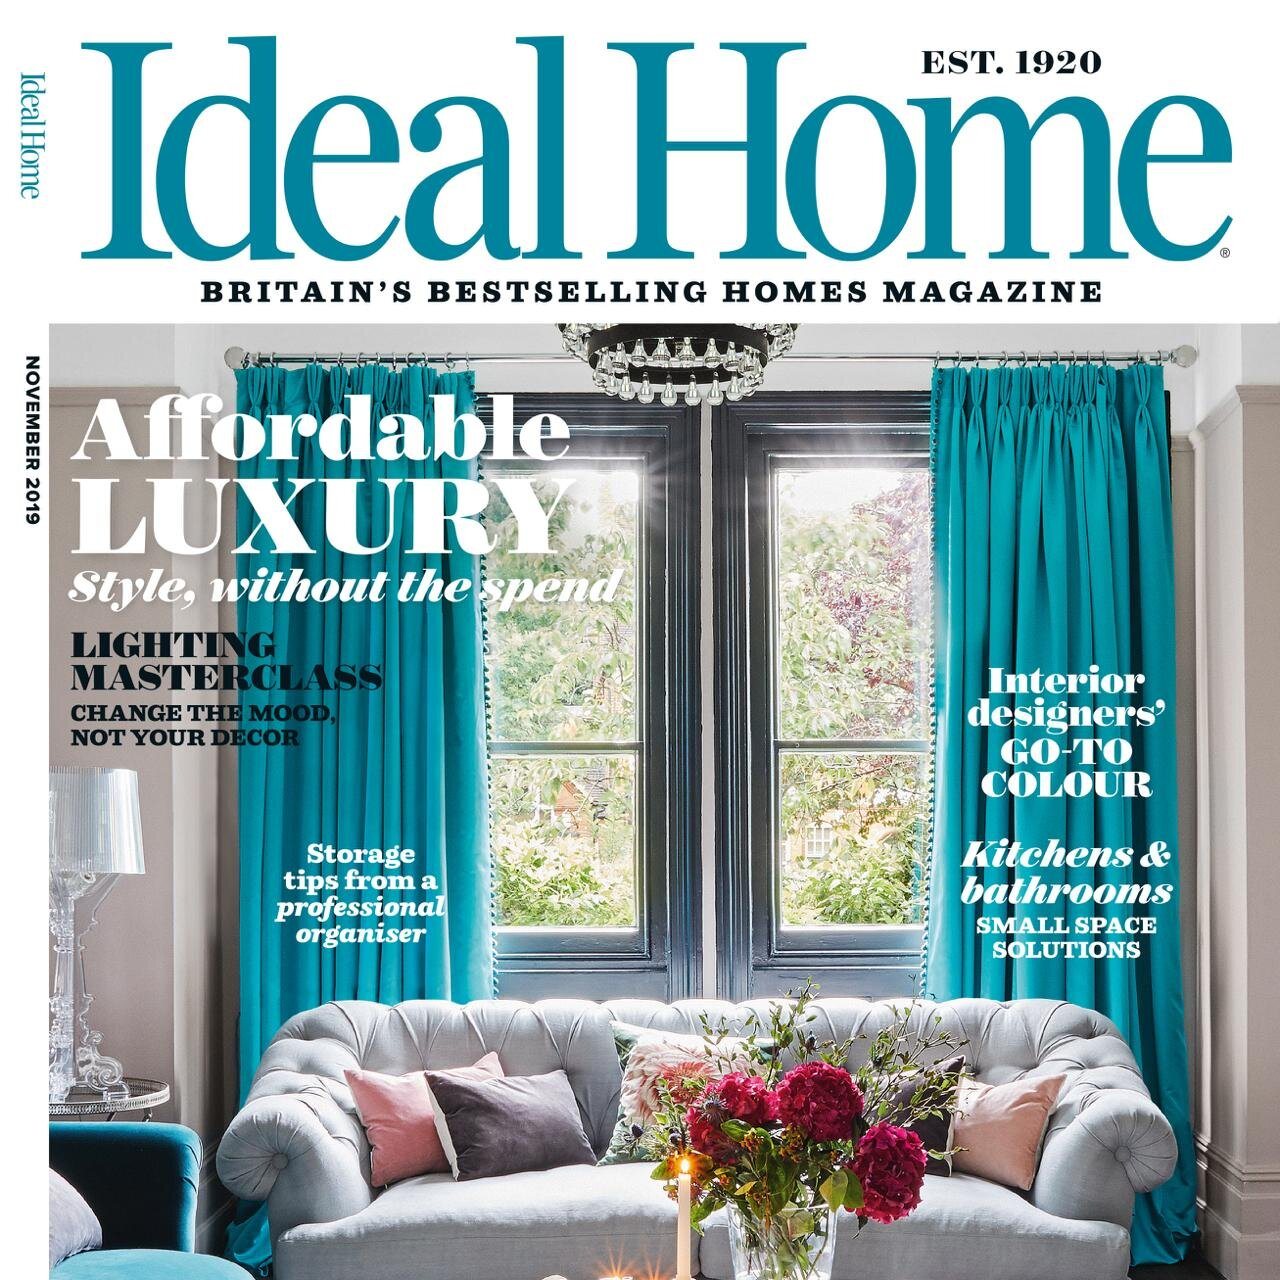 Ideal home front cover.jpeg